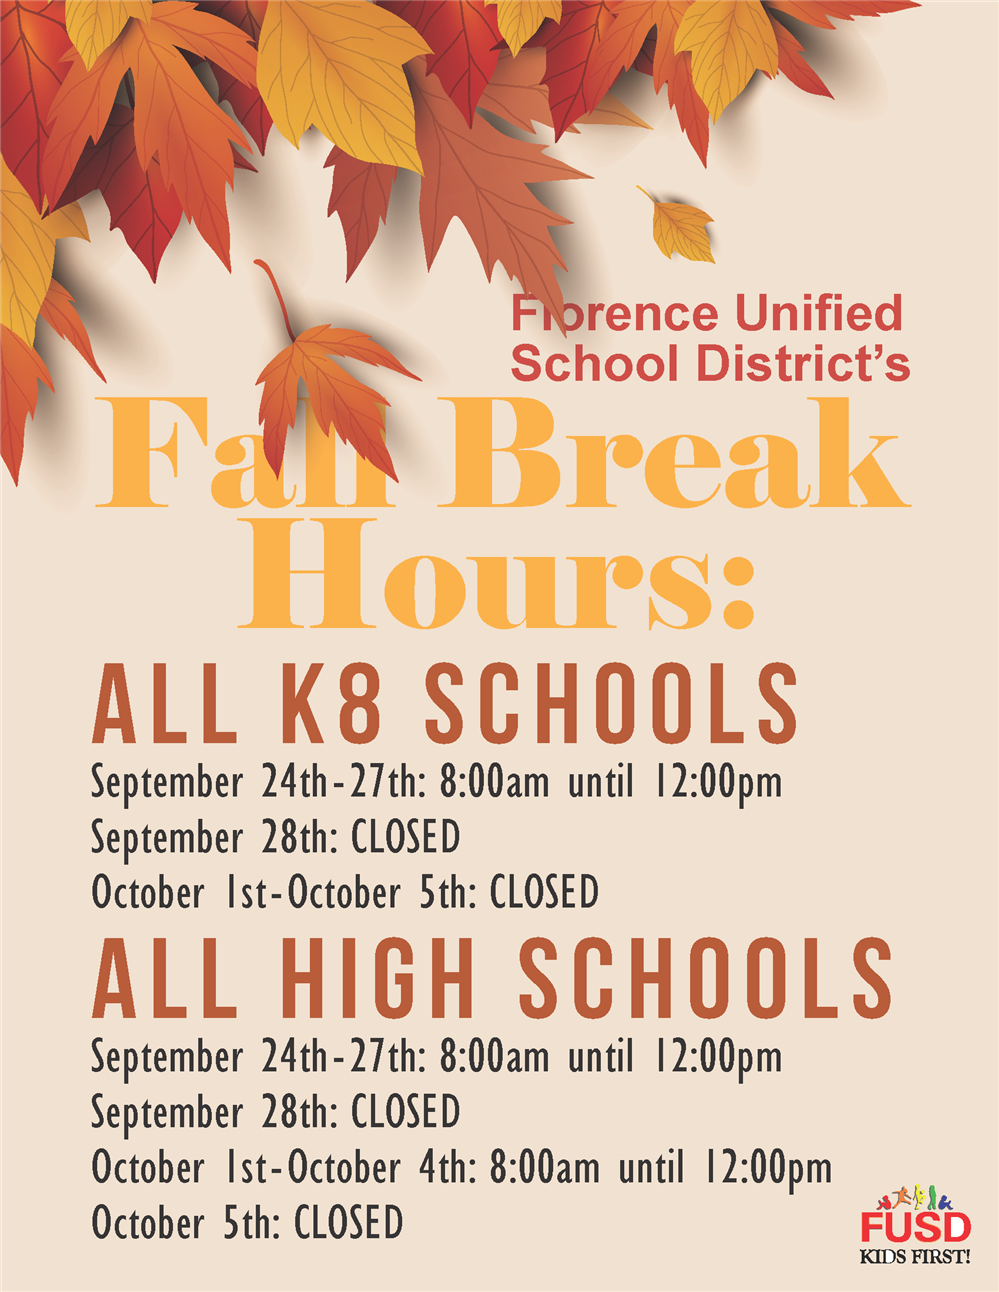 Fall Break Hours - K-8 Schools will be open from 8-12 Sept. 24-27 and High Schools will be open 8-12